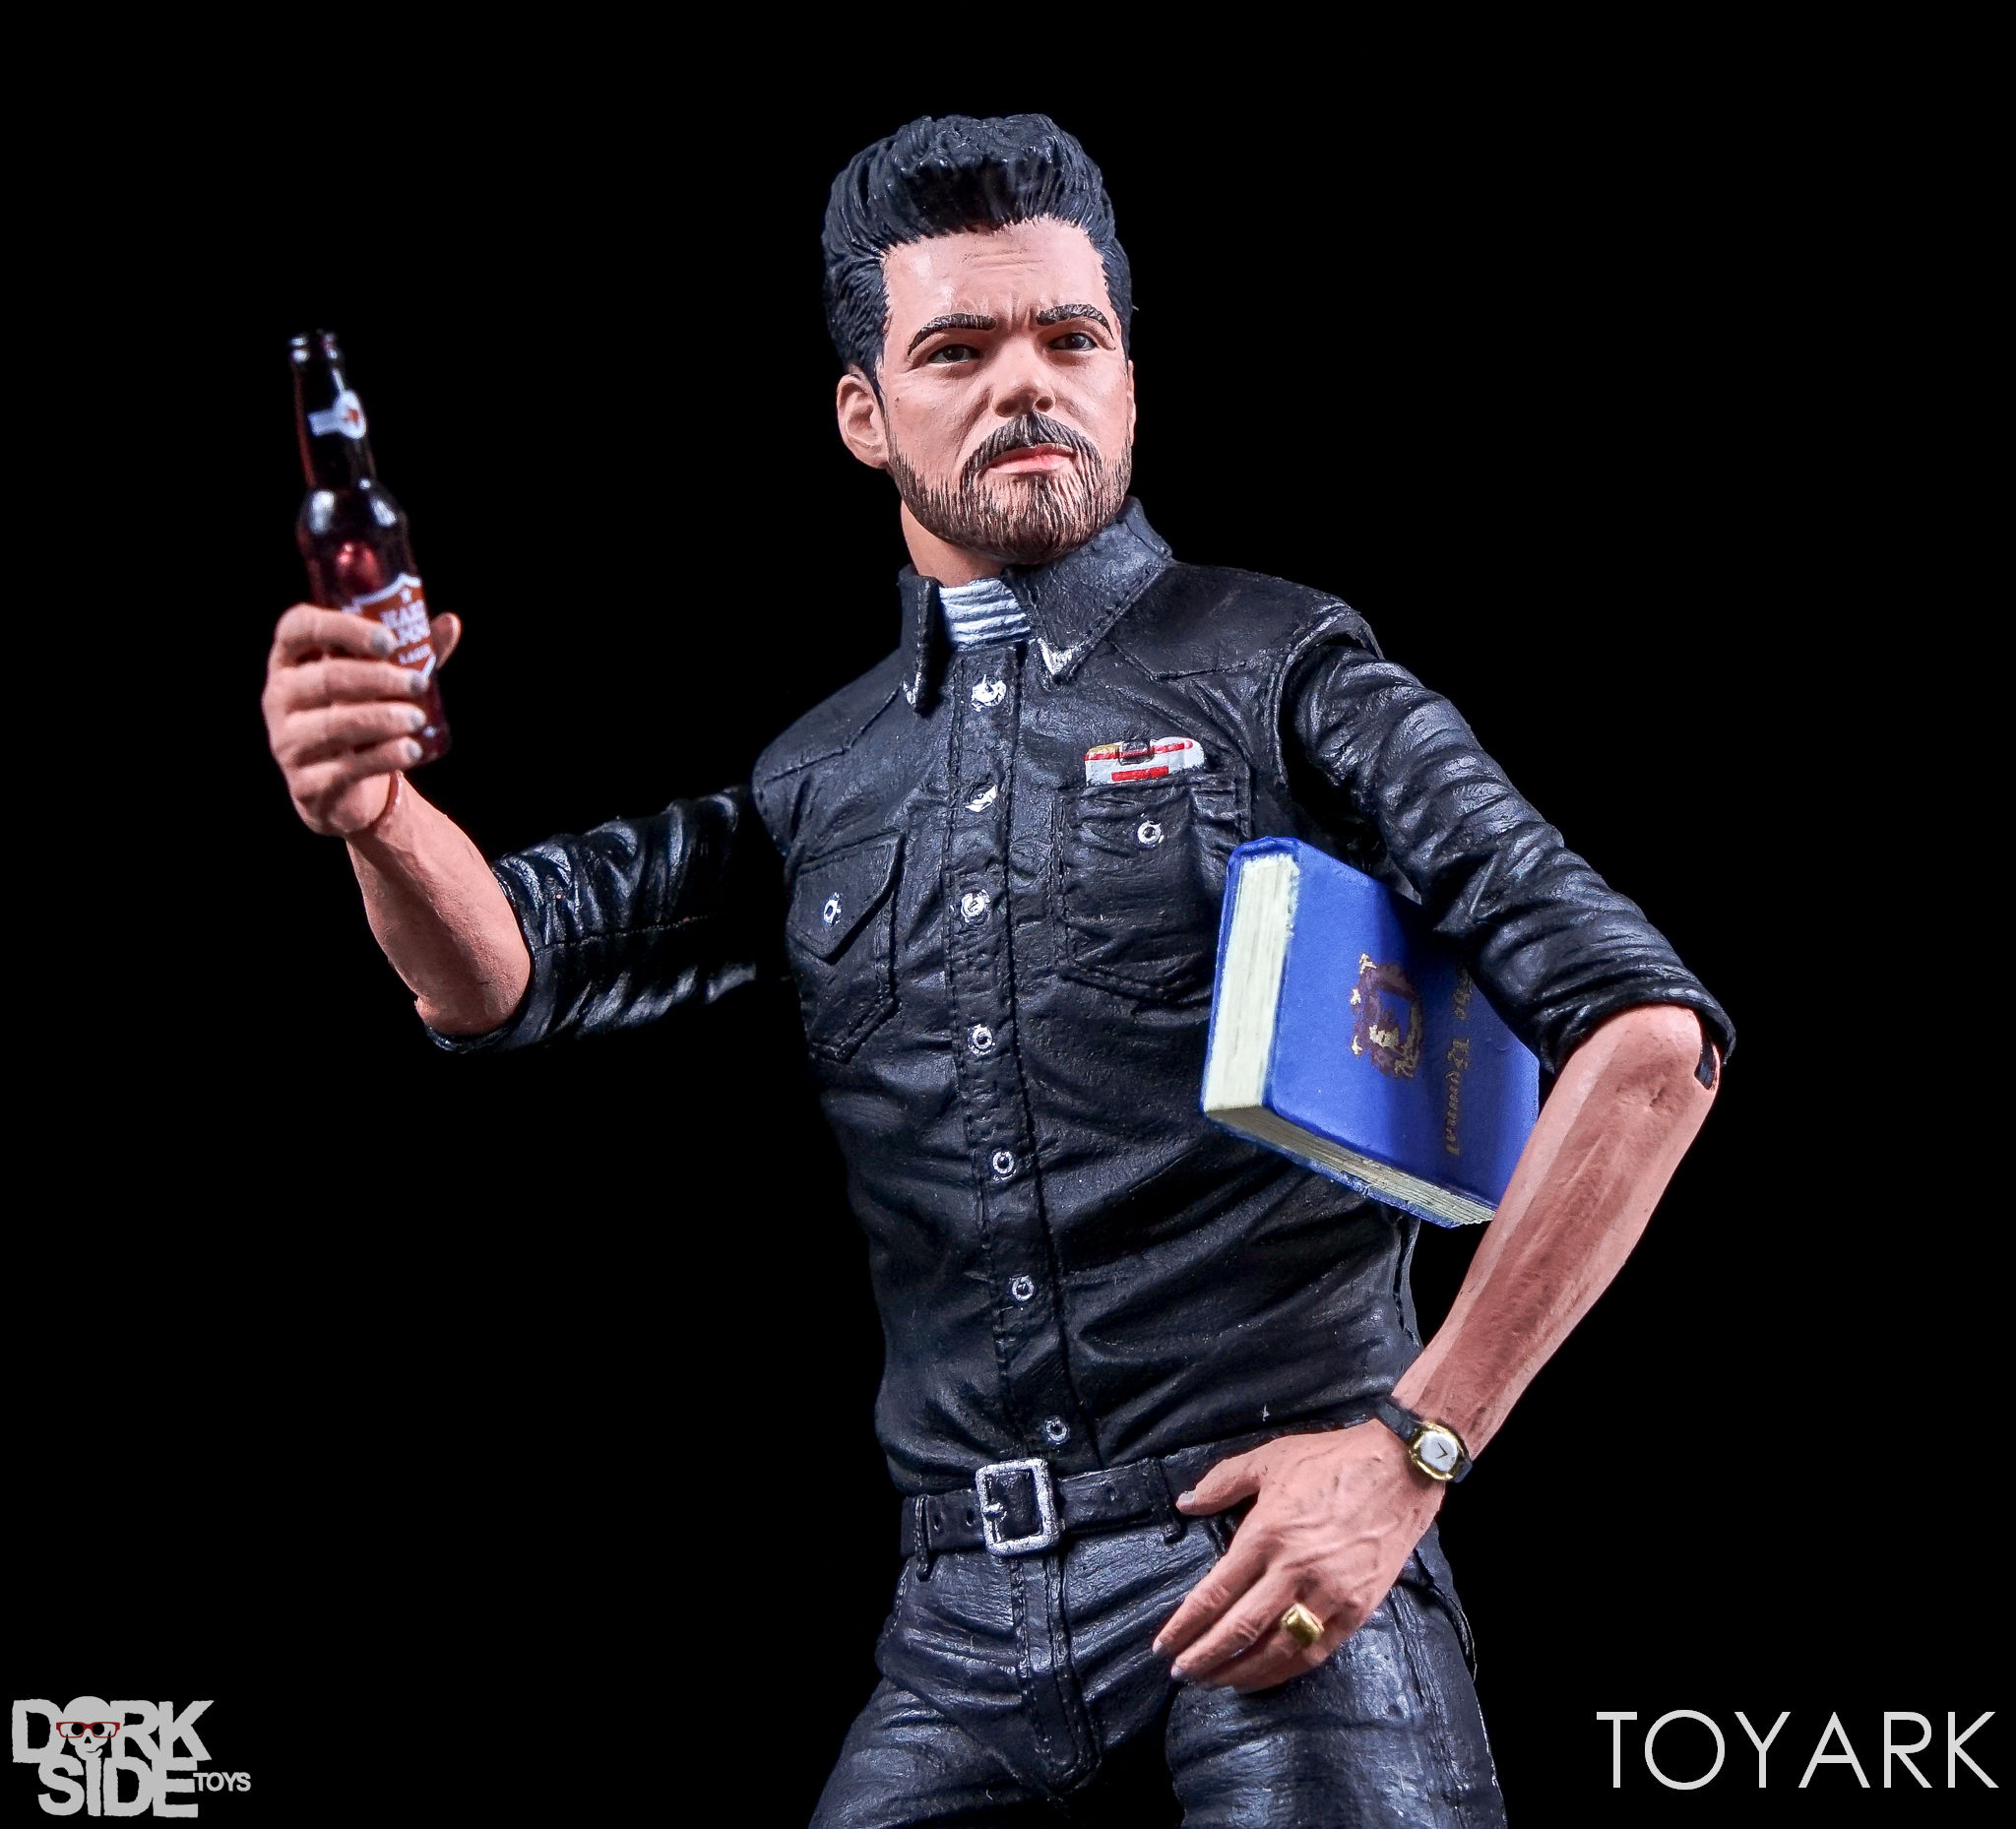 http://news.toyark.com/wp-content/uploads/sites/4/2017/05/NECA-Preacher-Figures-014.jpg